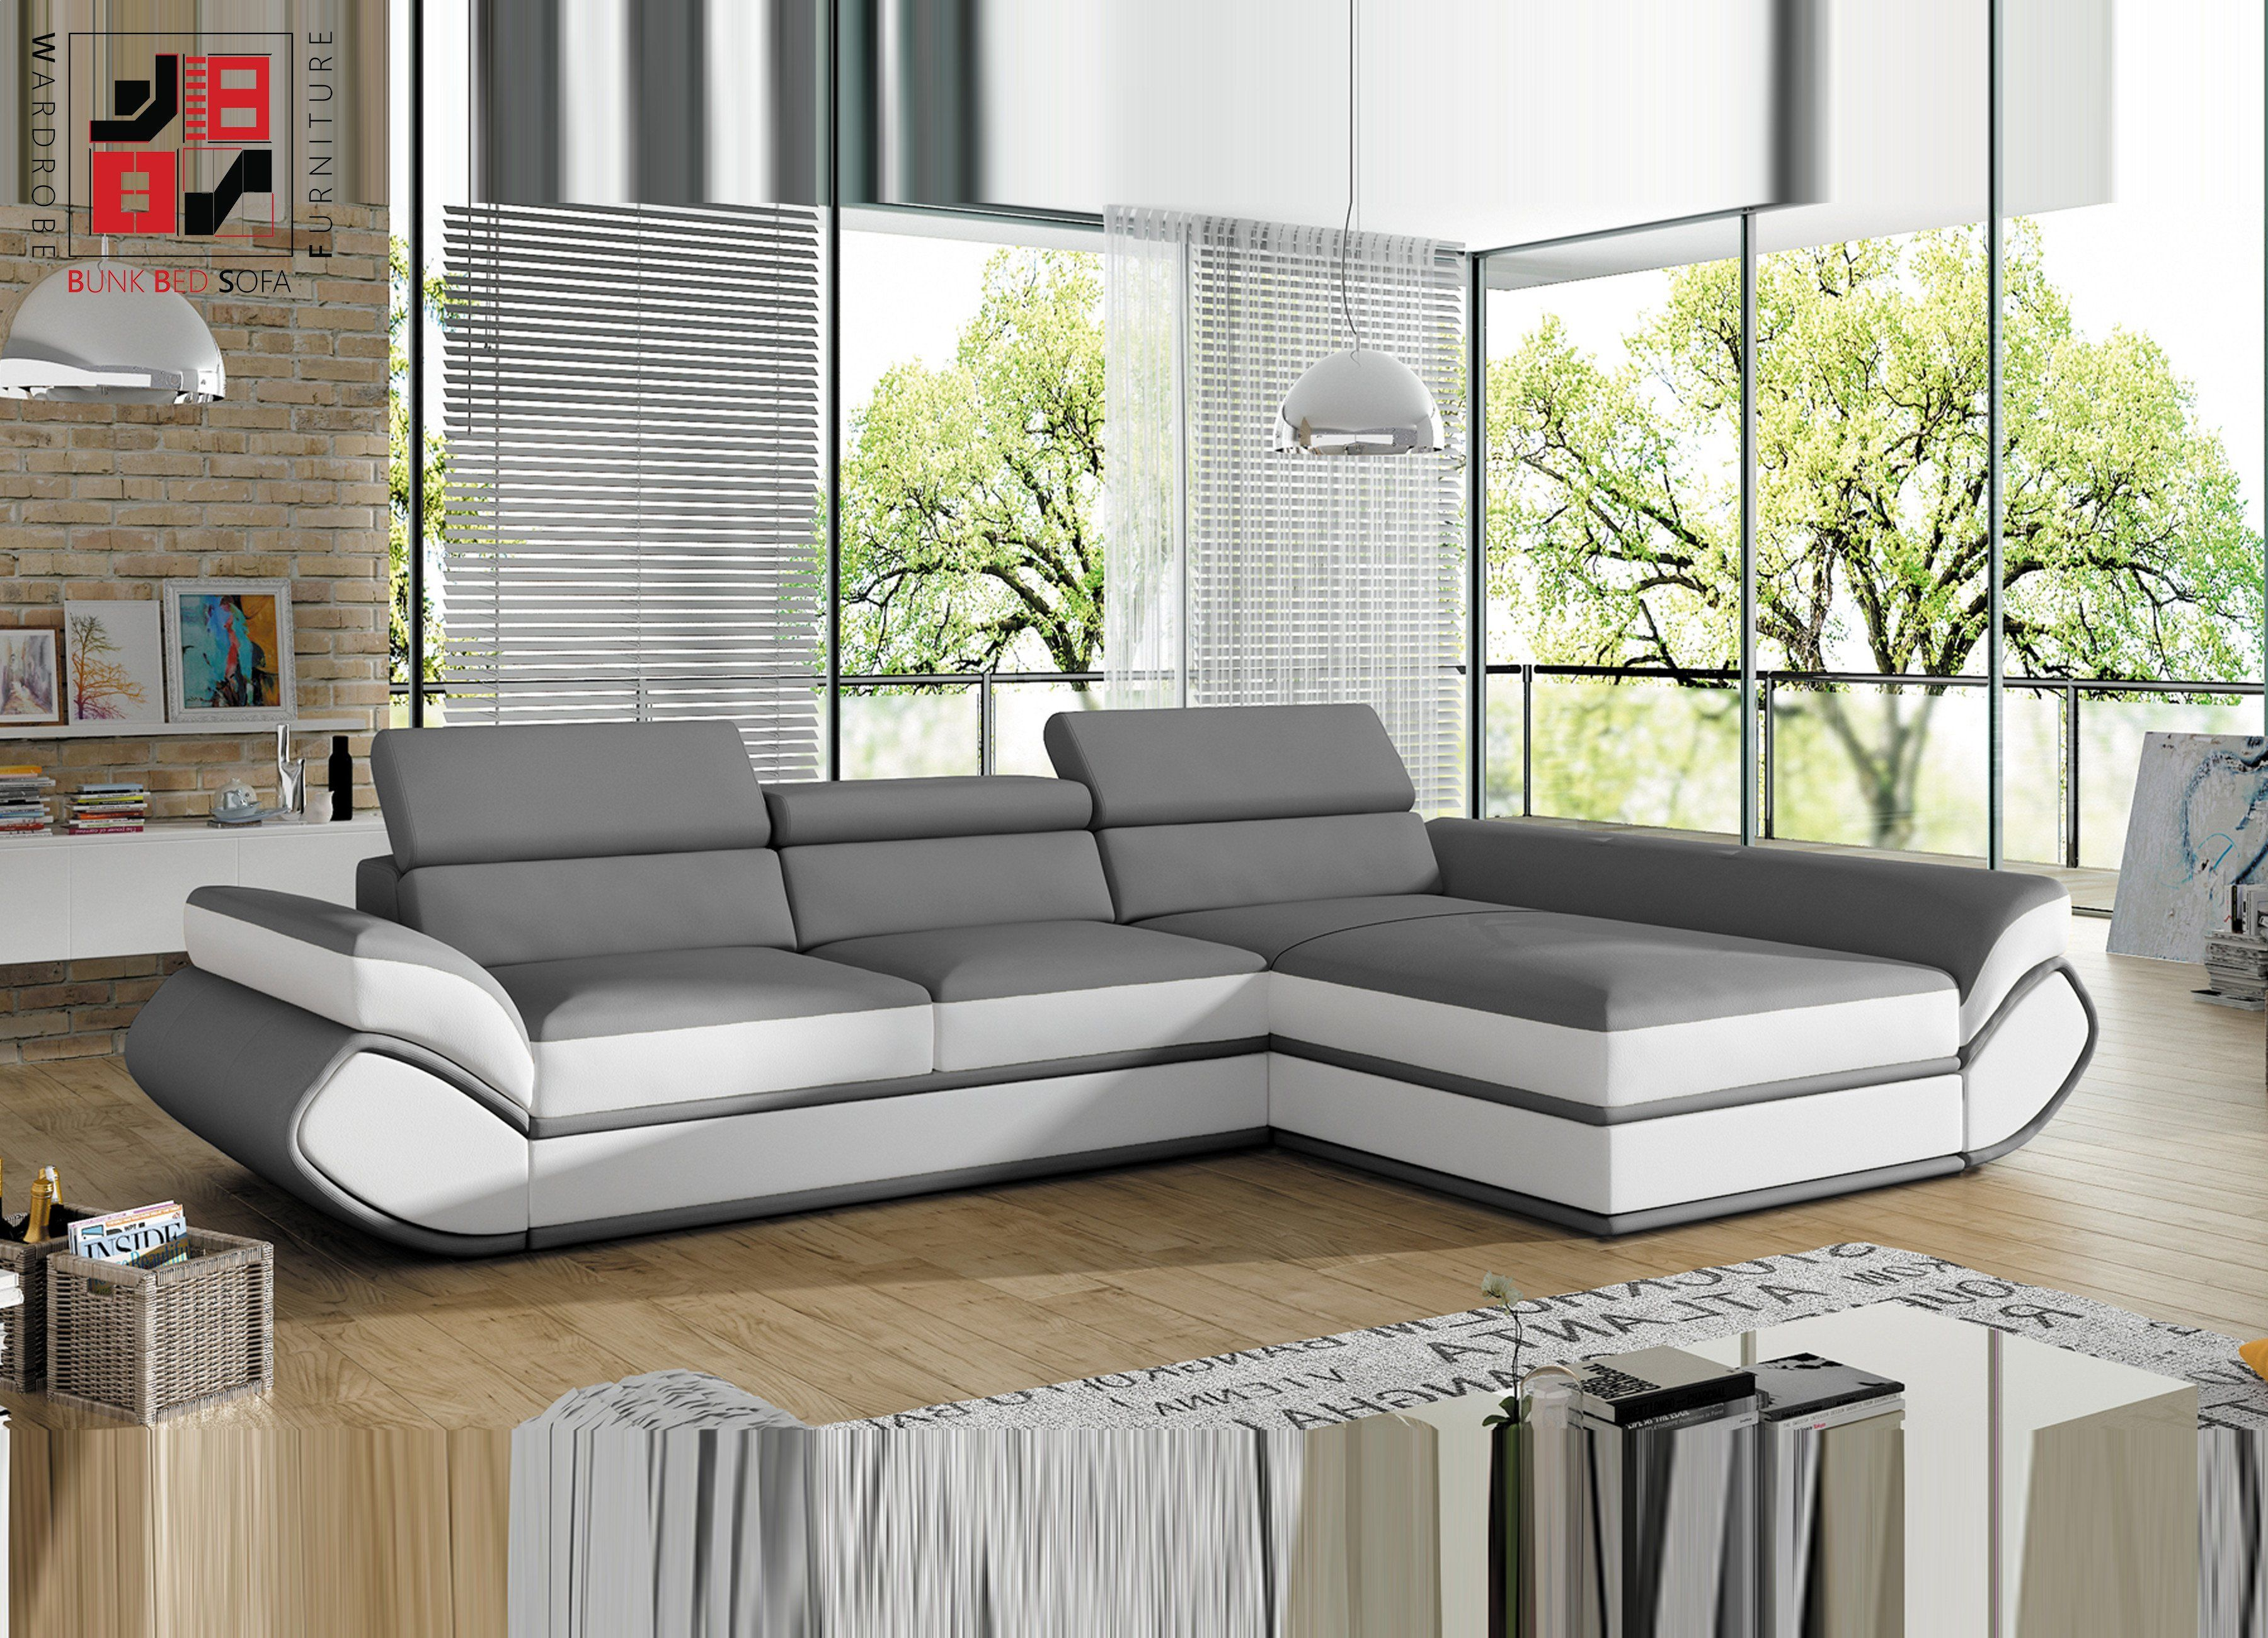 It Is Always Good To Decorate Your Living Room With Stylish Furniture These Days A